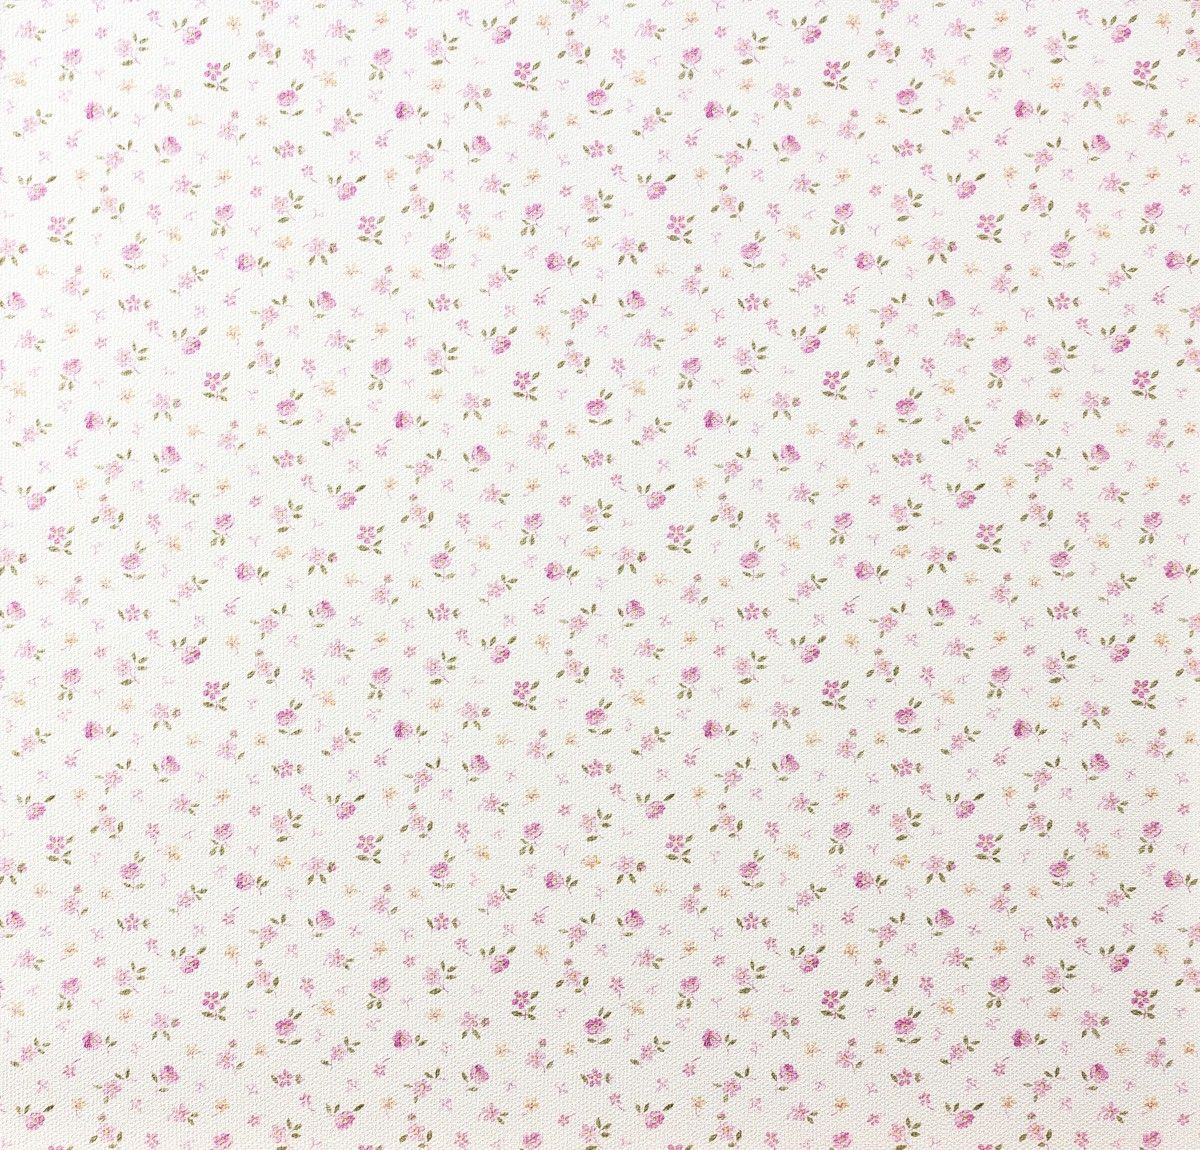 Cottage Style Wallpaper Fleuri Pastel A S 93768 2 937682 Flowers Rose Green White Pastel Colors Wallpaper White Wallpaper